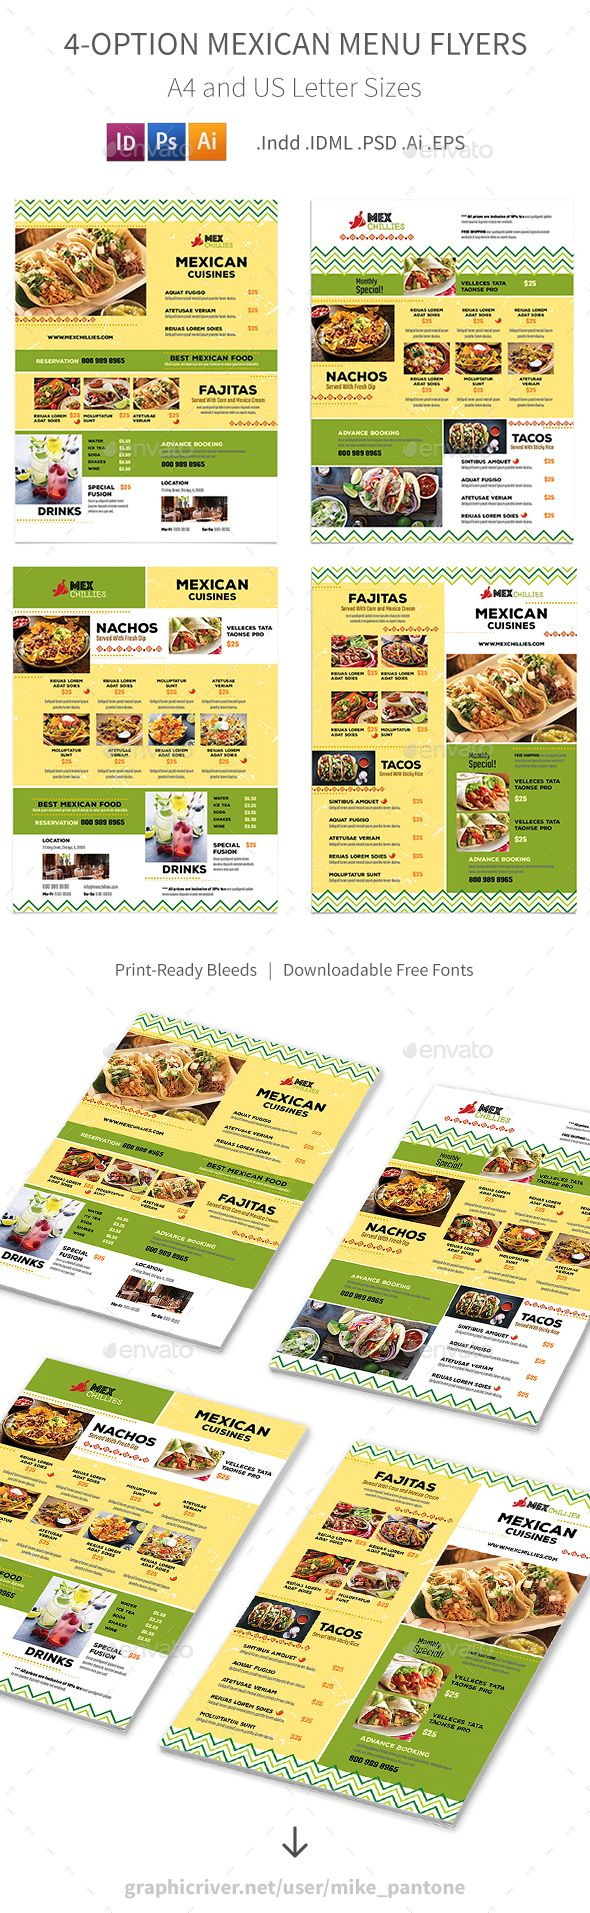 Mexican Restaurant Menu Flyers 2 4 Options Food Menus Print